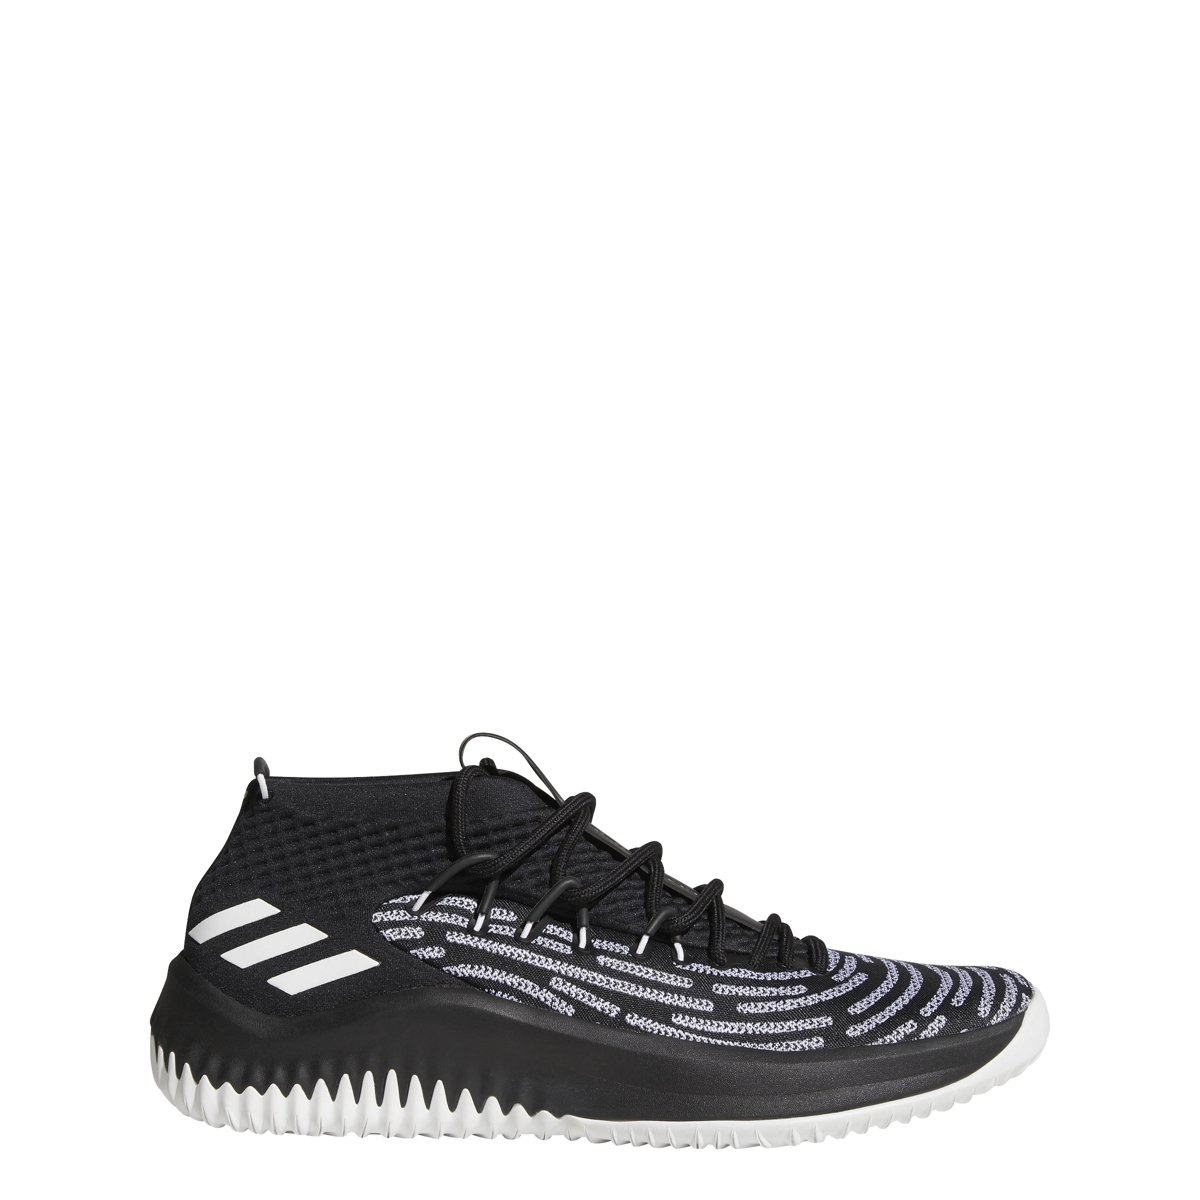 adidas Dame 4 Black History Month Shoe Men's Basketball B079NNBZHH 11.5 D(M) US|Black-white